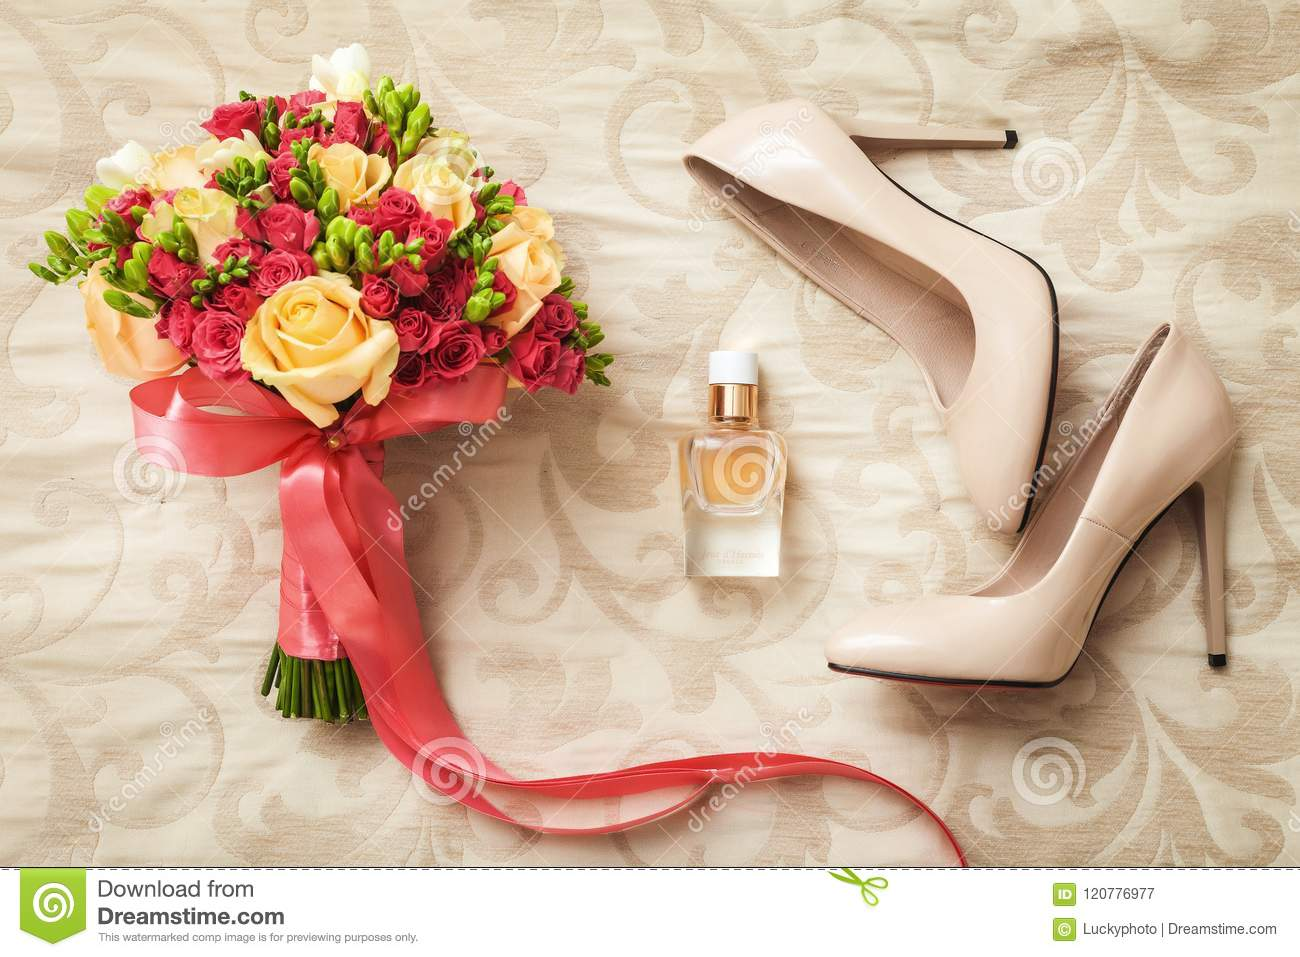 Wedding set of bridal bouquet, white shoes and perfume